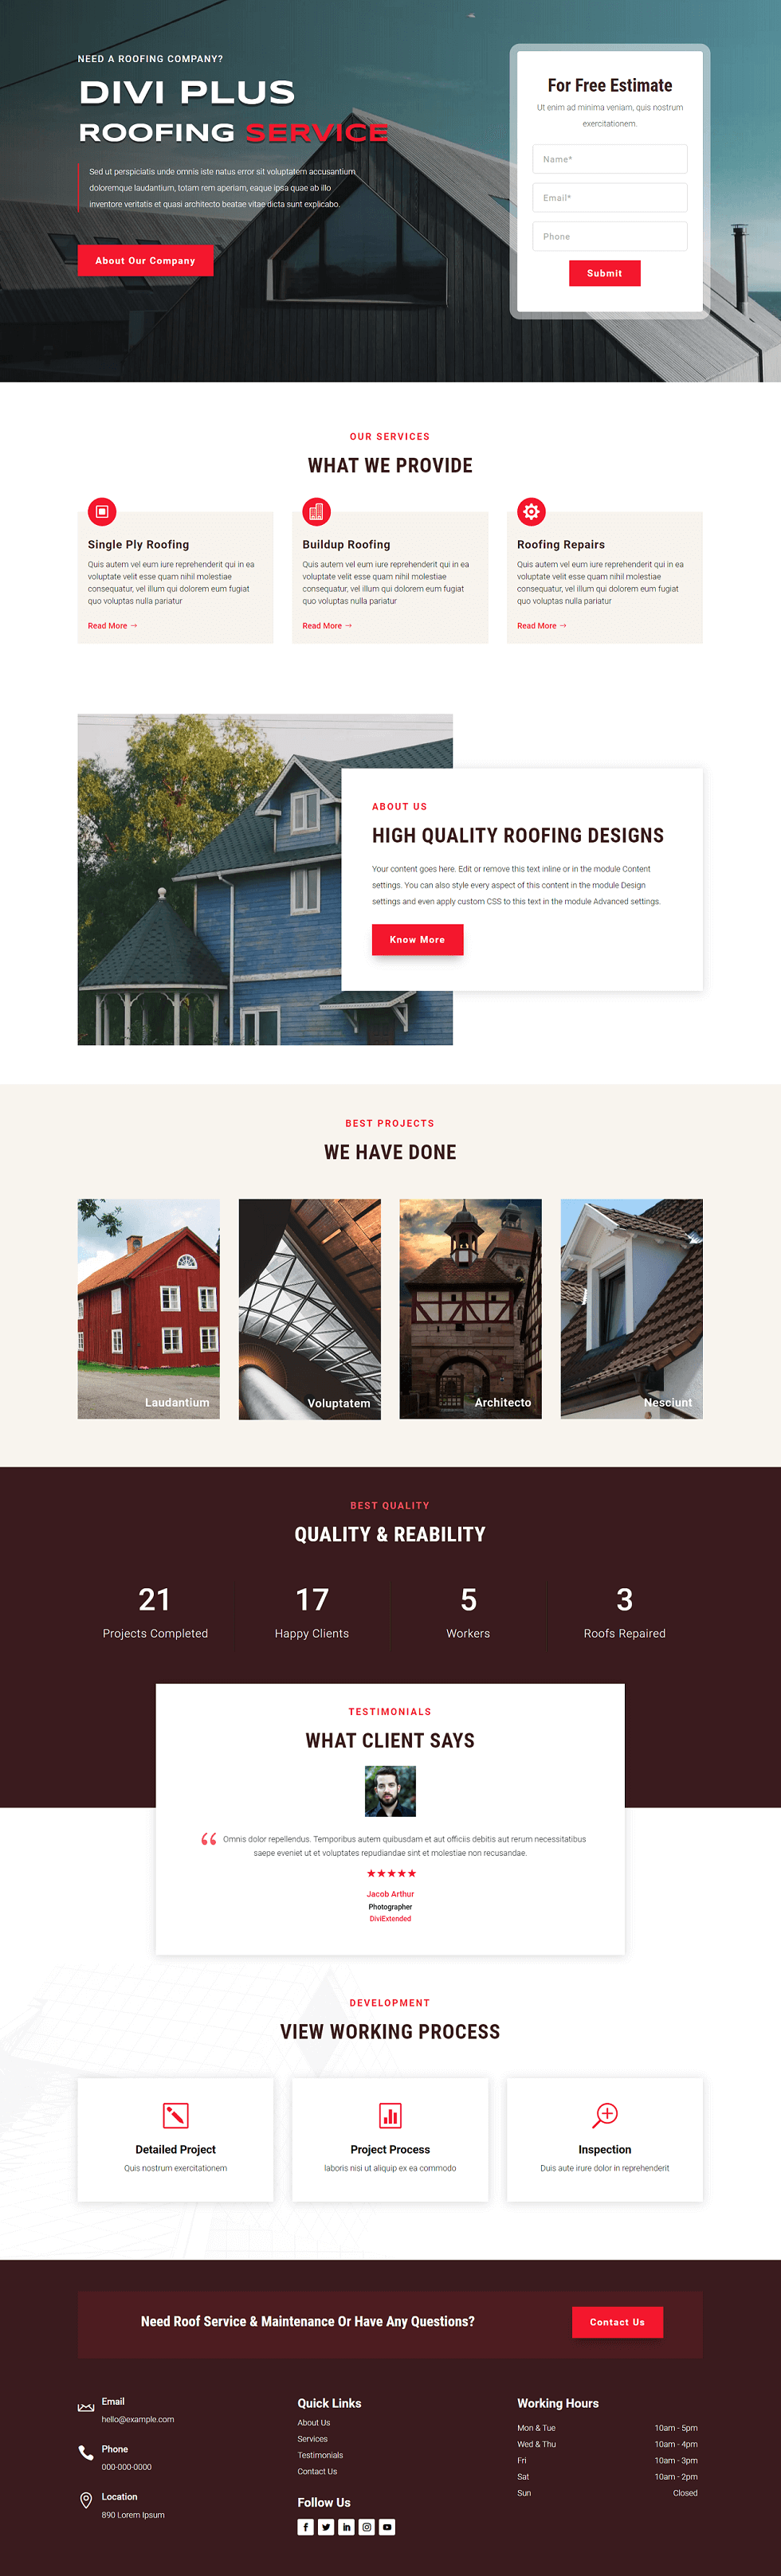 Roofing Services Image